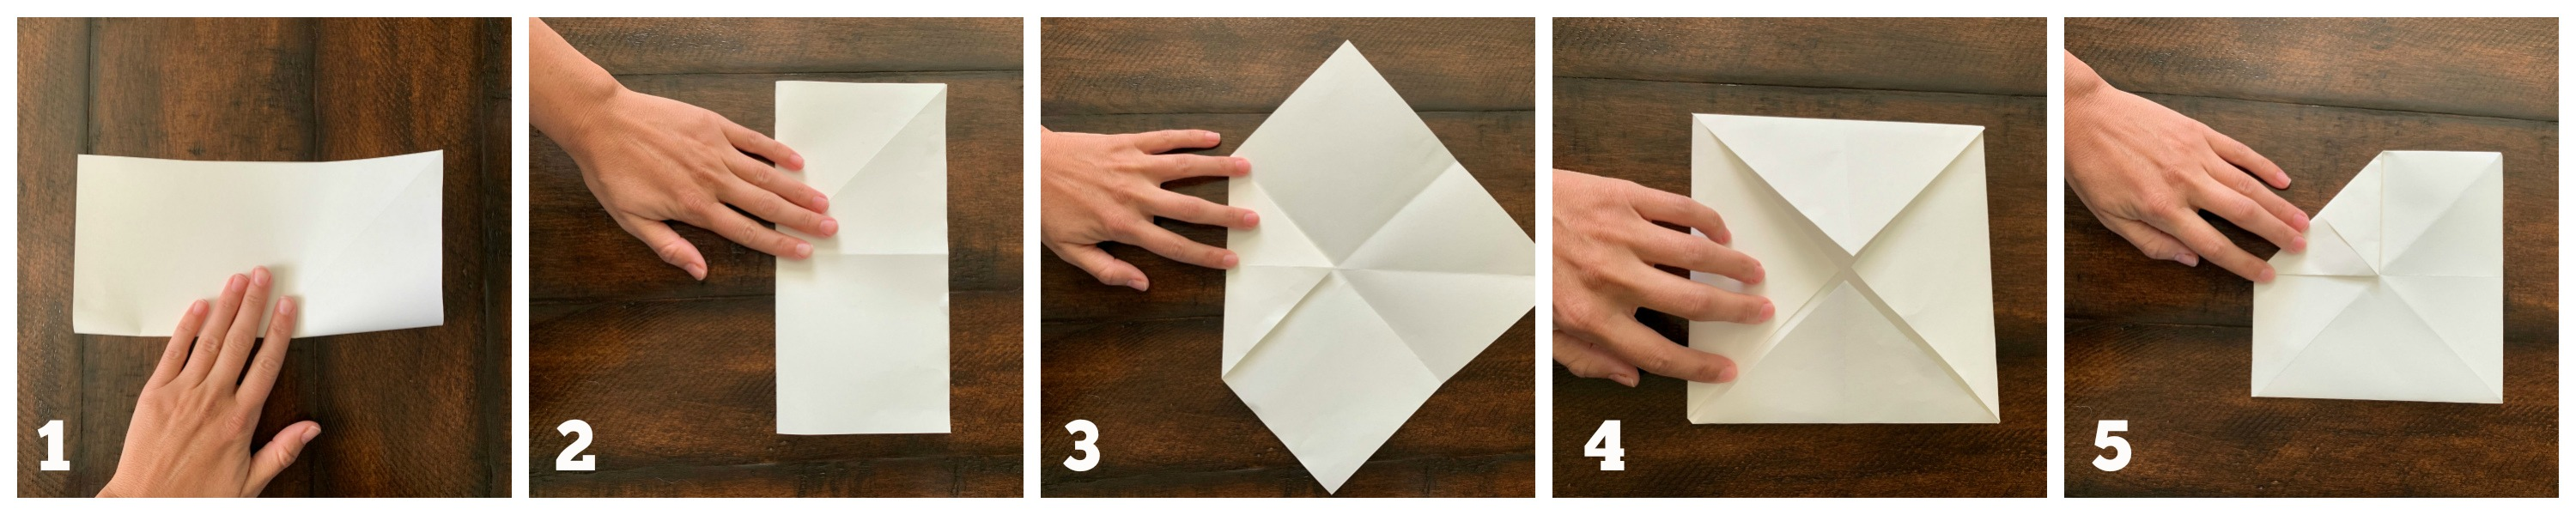 Paper Fortune Teller for Coping With Grief